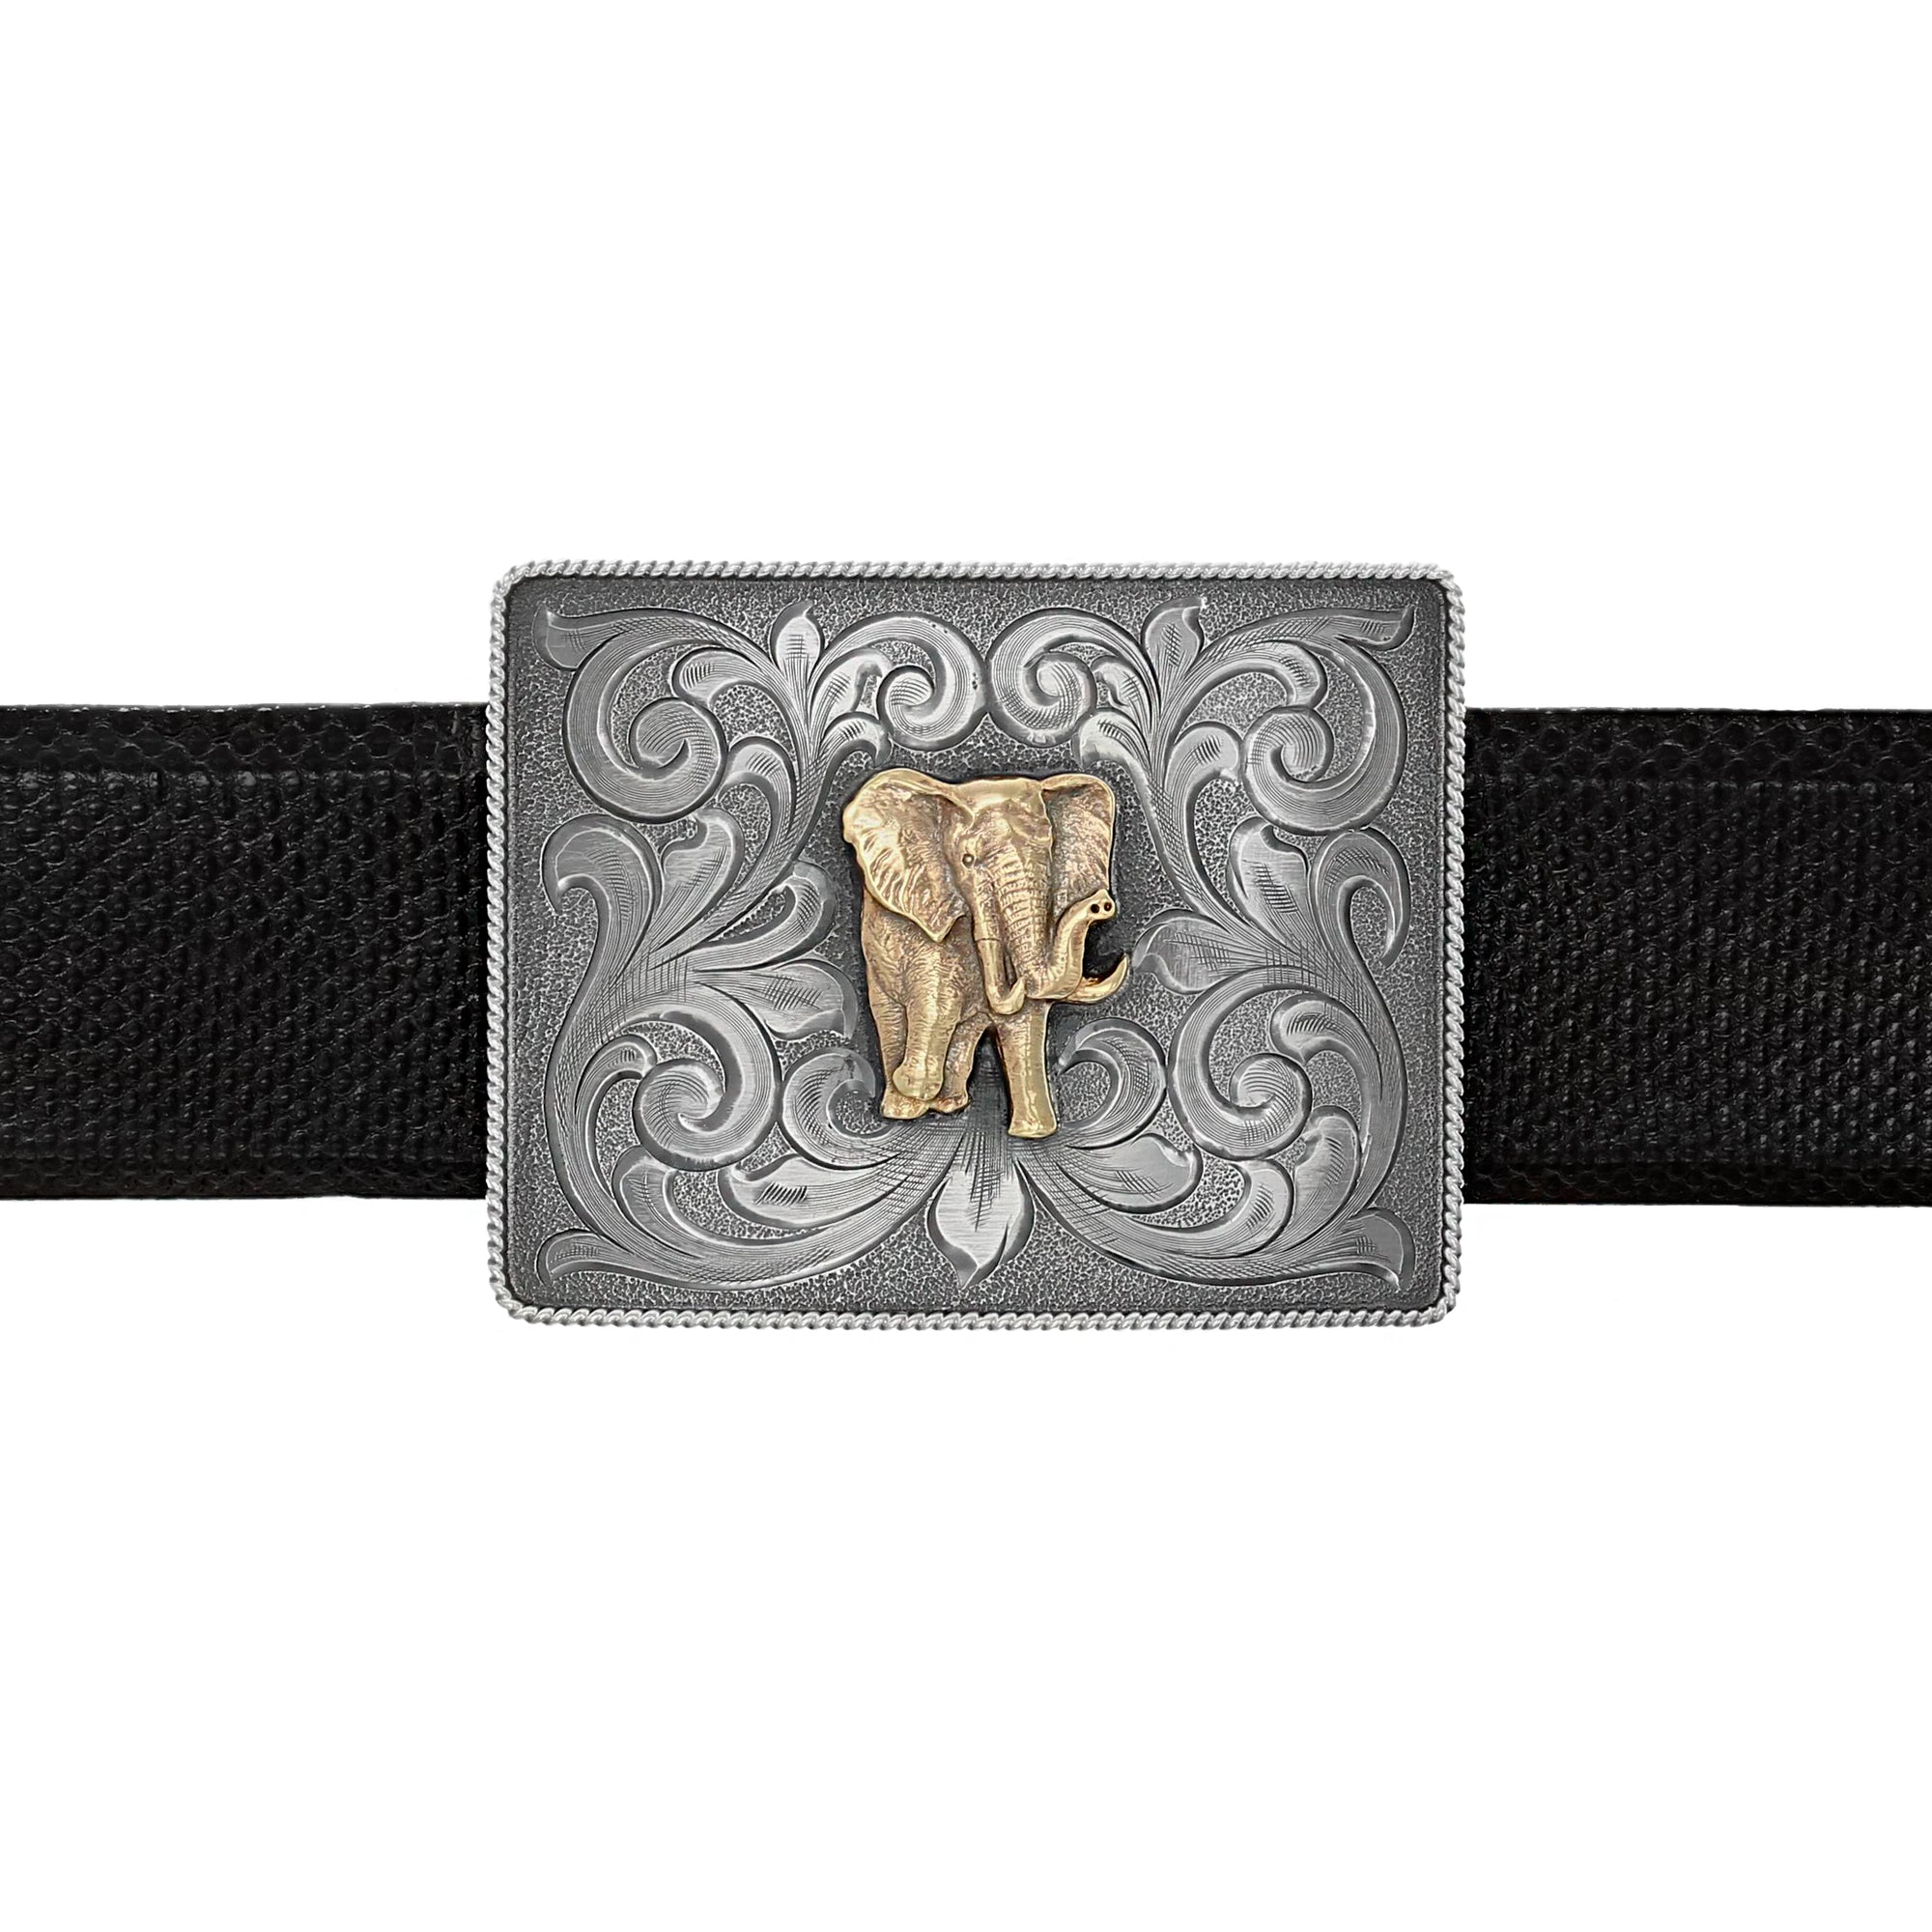 Tara 1815 Gold Elephant Trophy Buckle